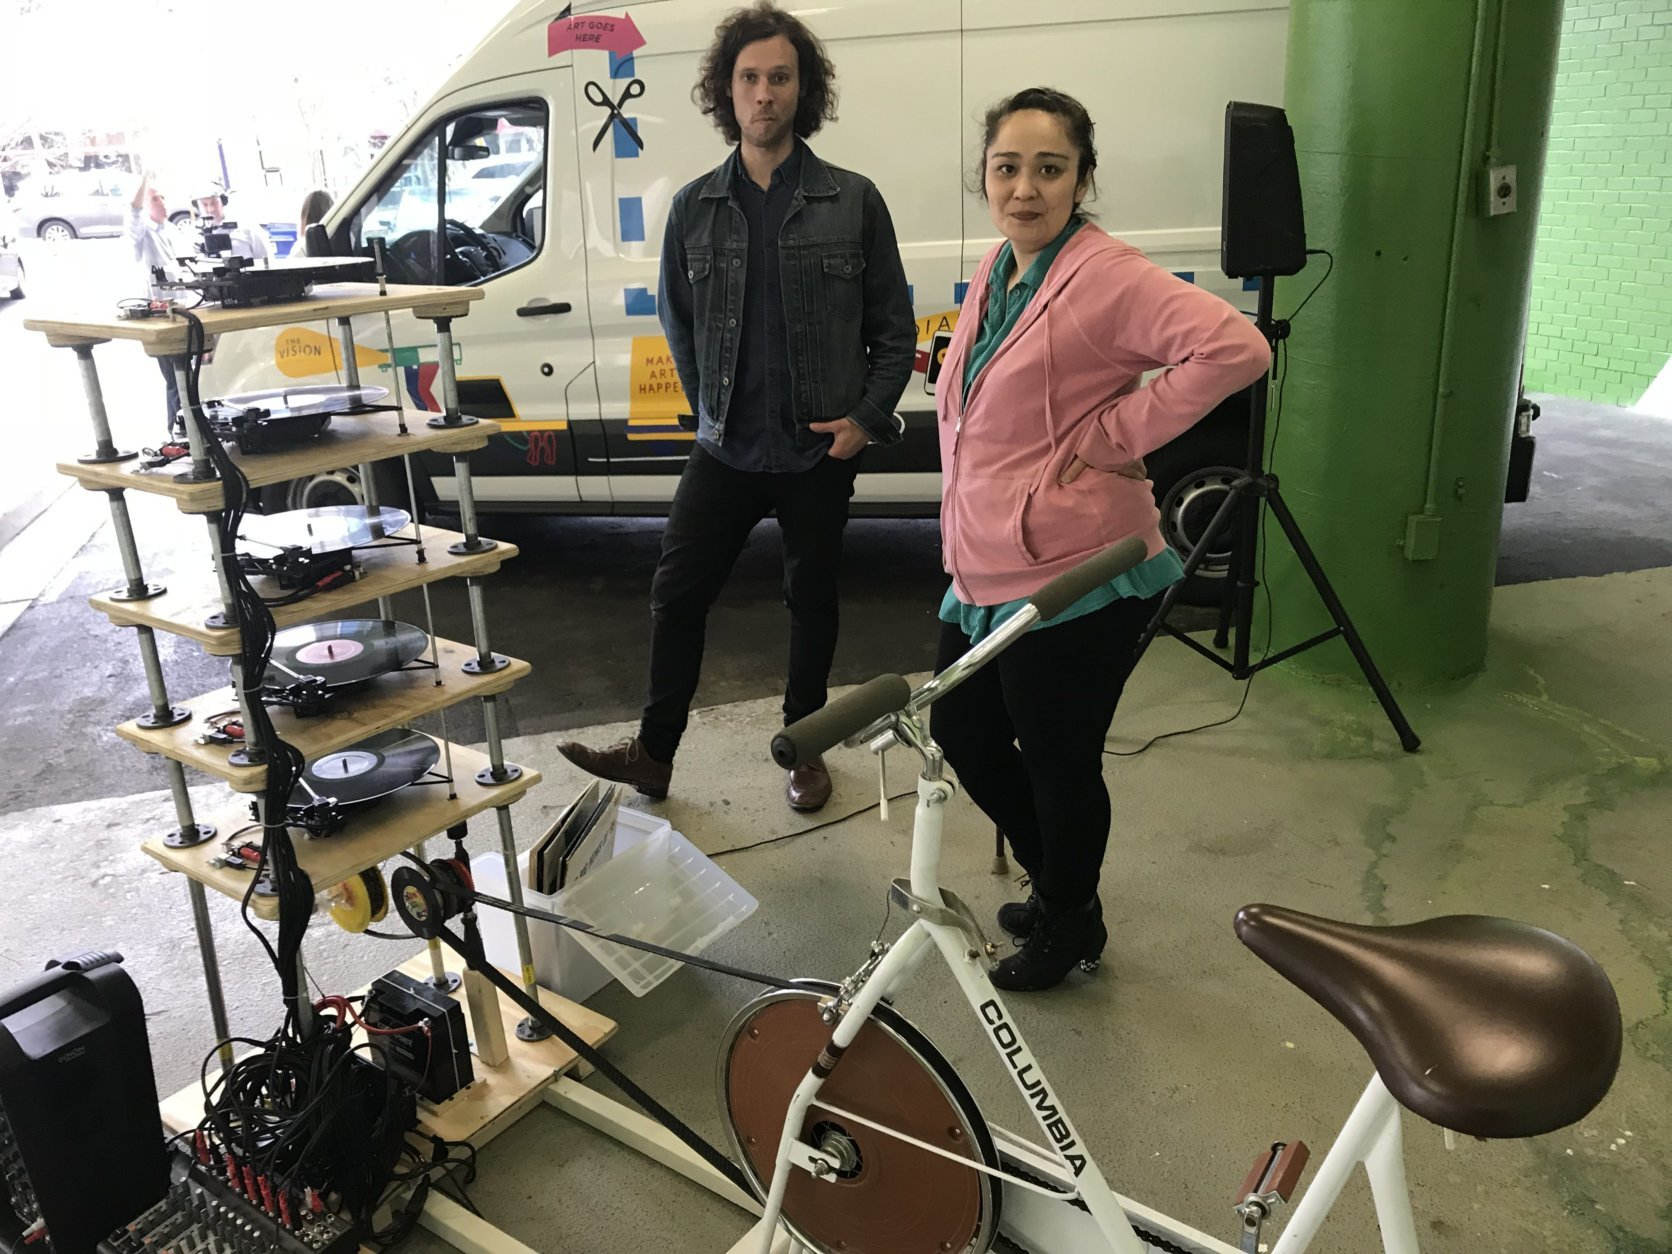 Artists Alex Braden and Emily Francisco created Bipedal Soundscapes — a bicycle-powered, five-tiered turntable. (WTOP/Neal Augenstein)